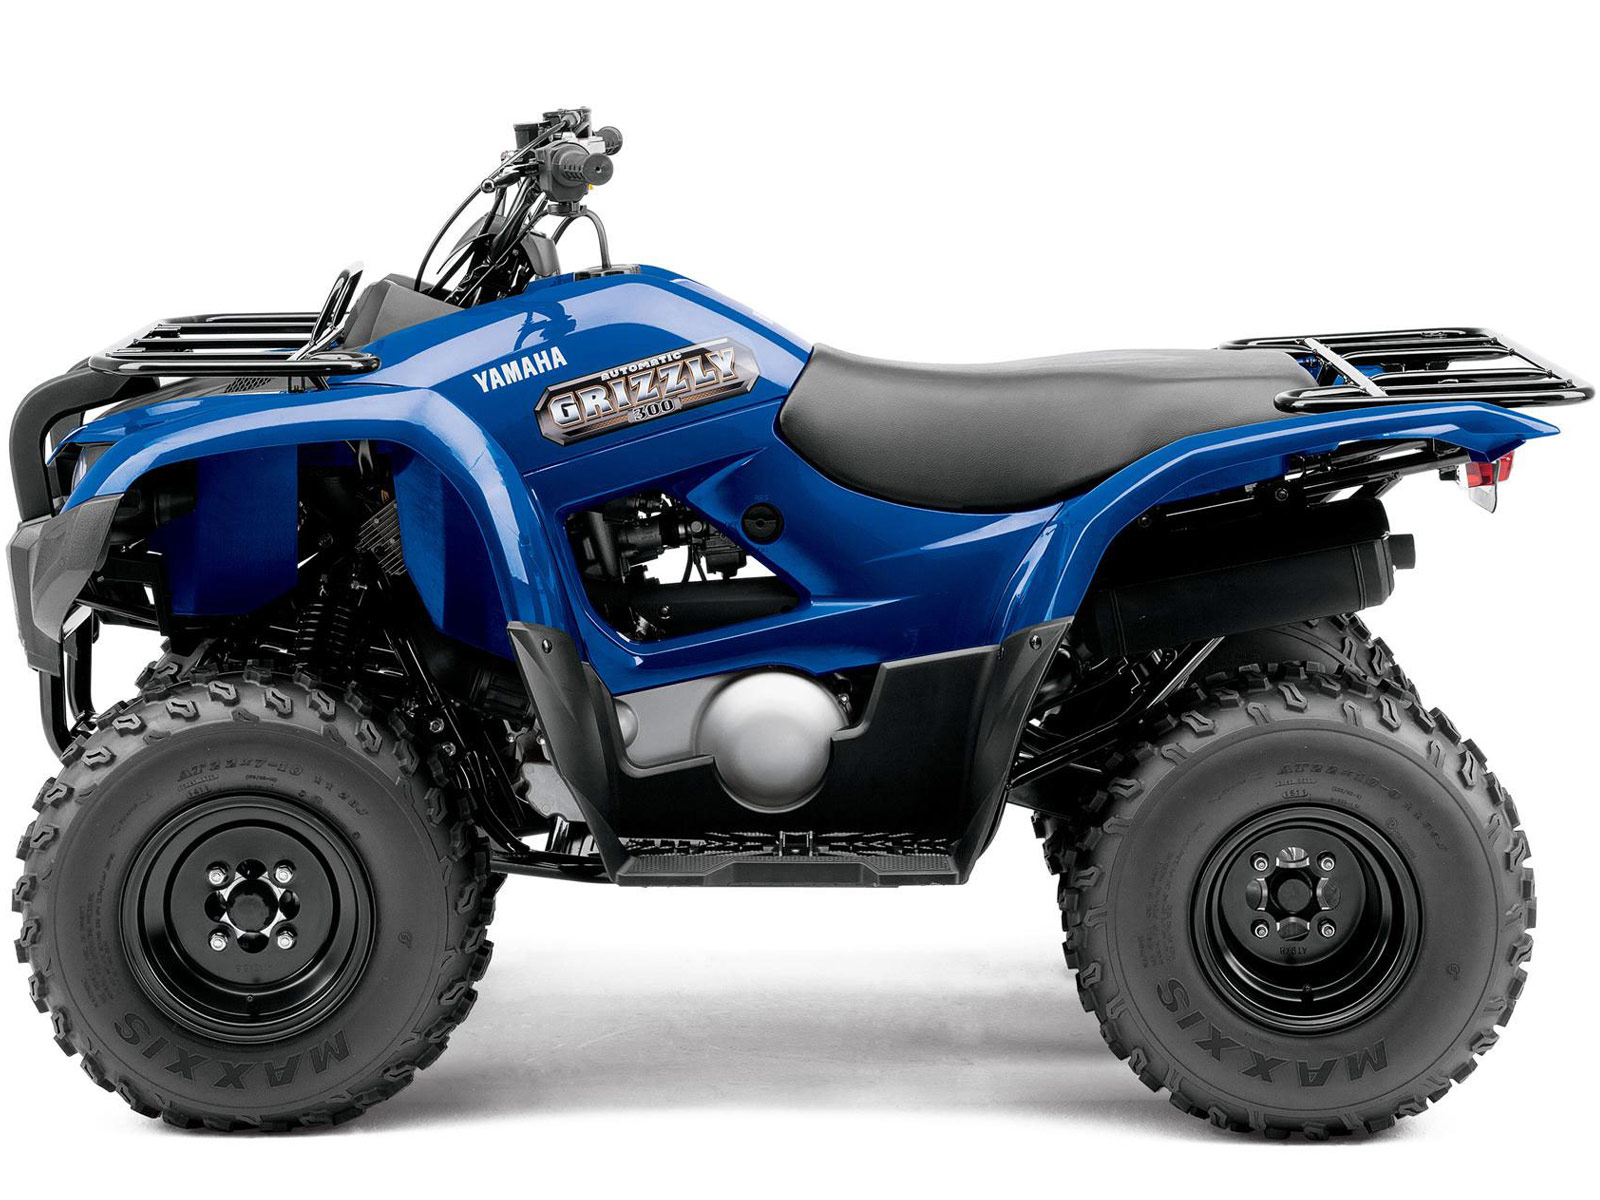 2013 yamaha grizzly 300 automatic atv pictures. Black Bedroom Furniture Sets. Home Design Ideas